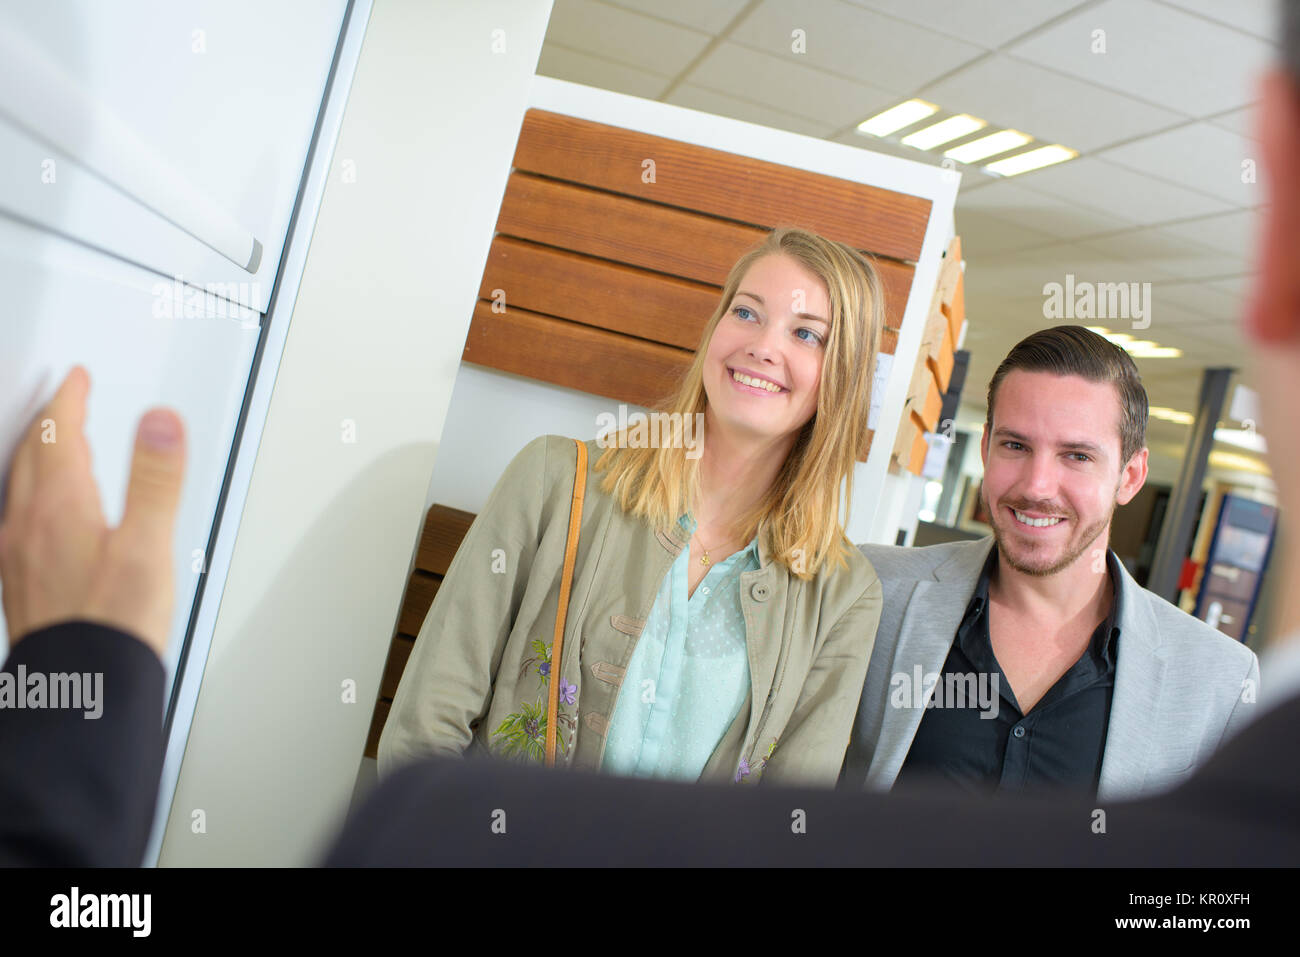 smiling customers - Stock Image